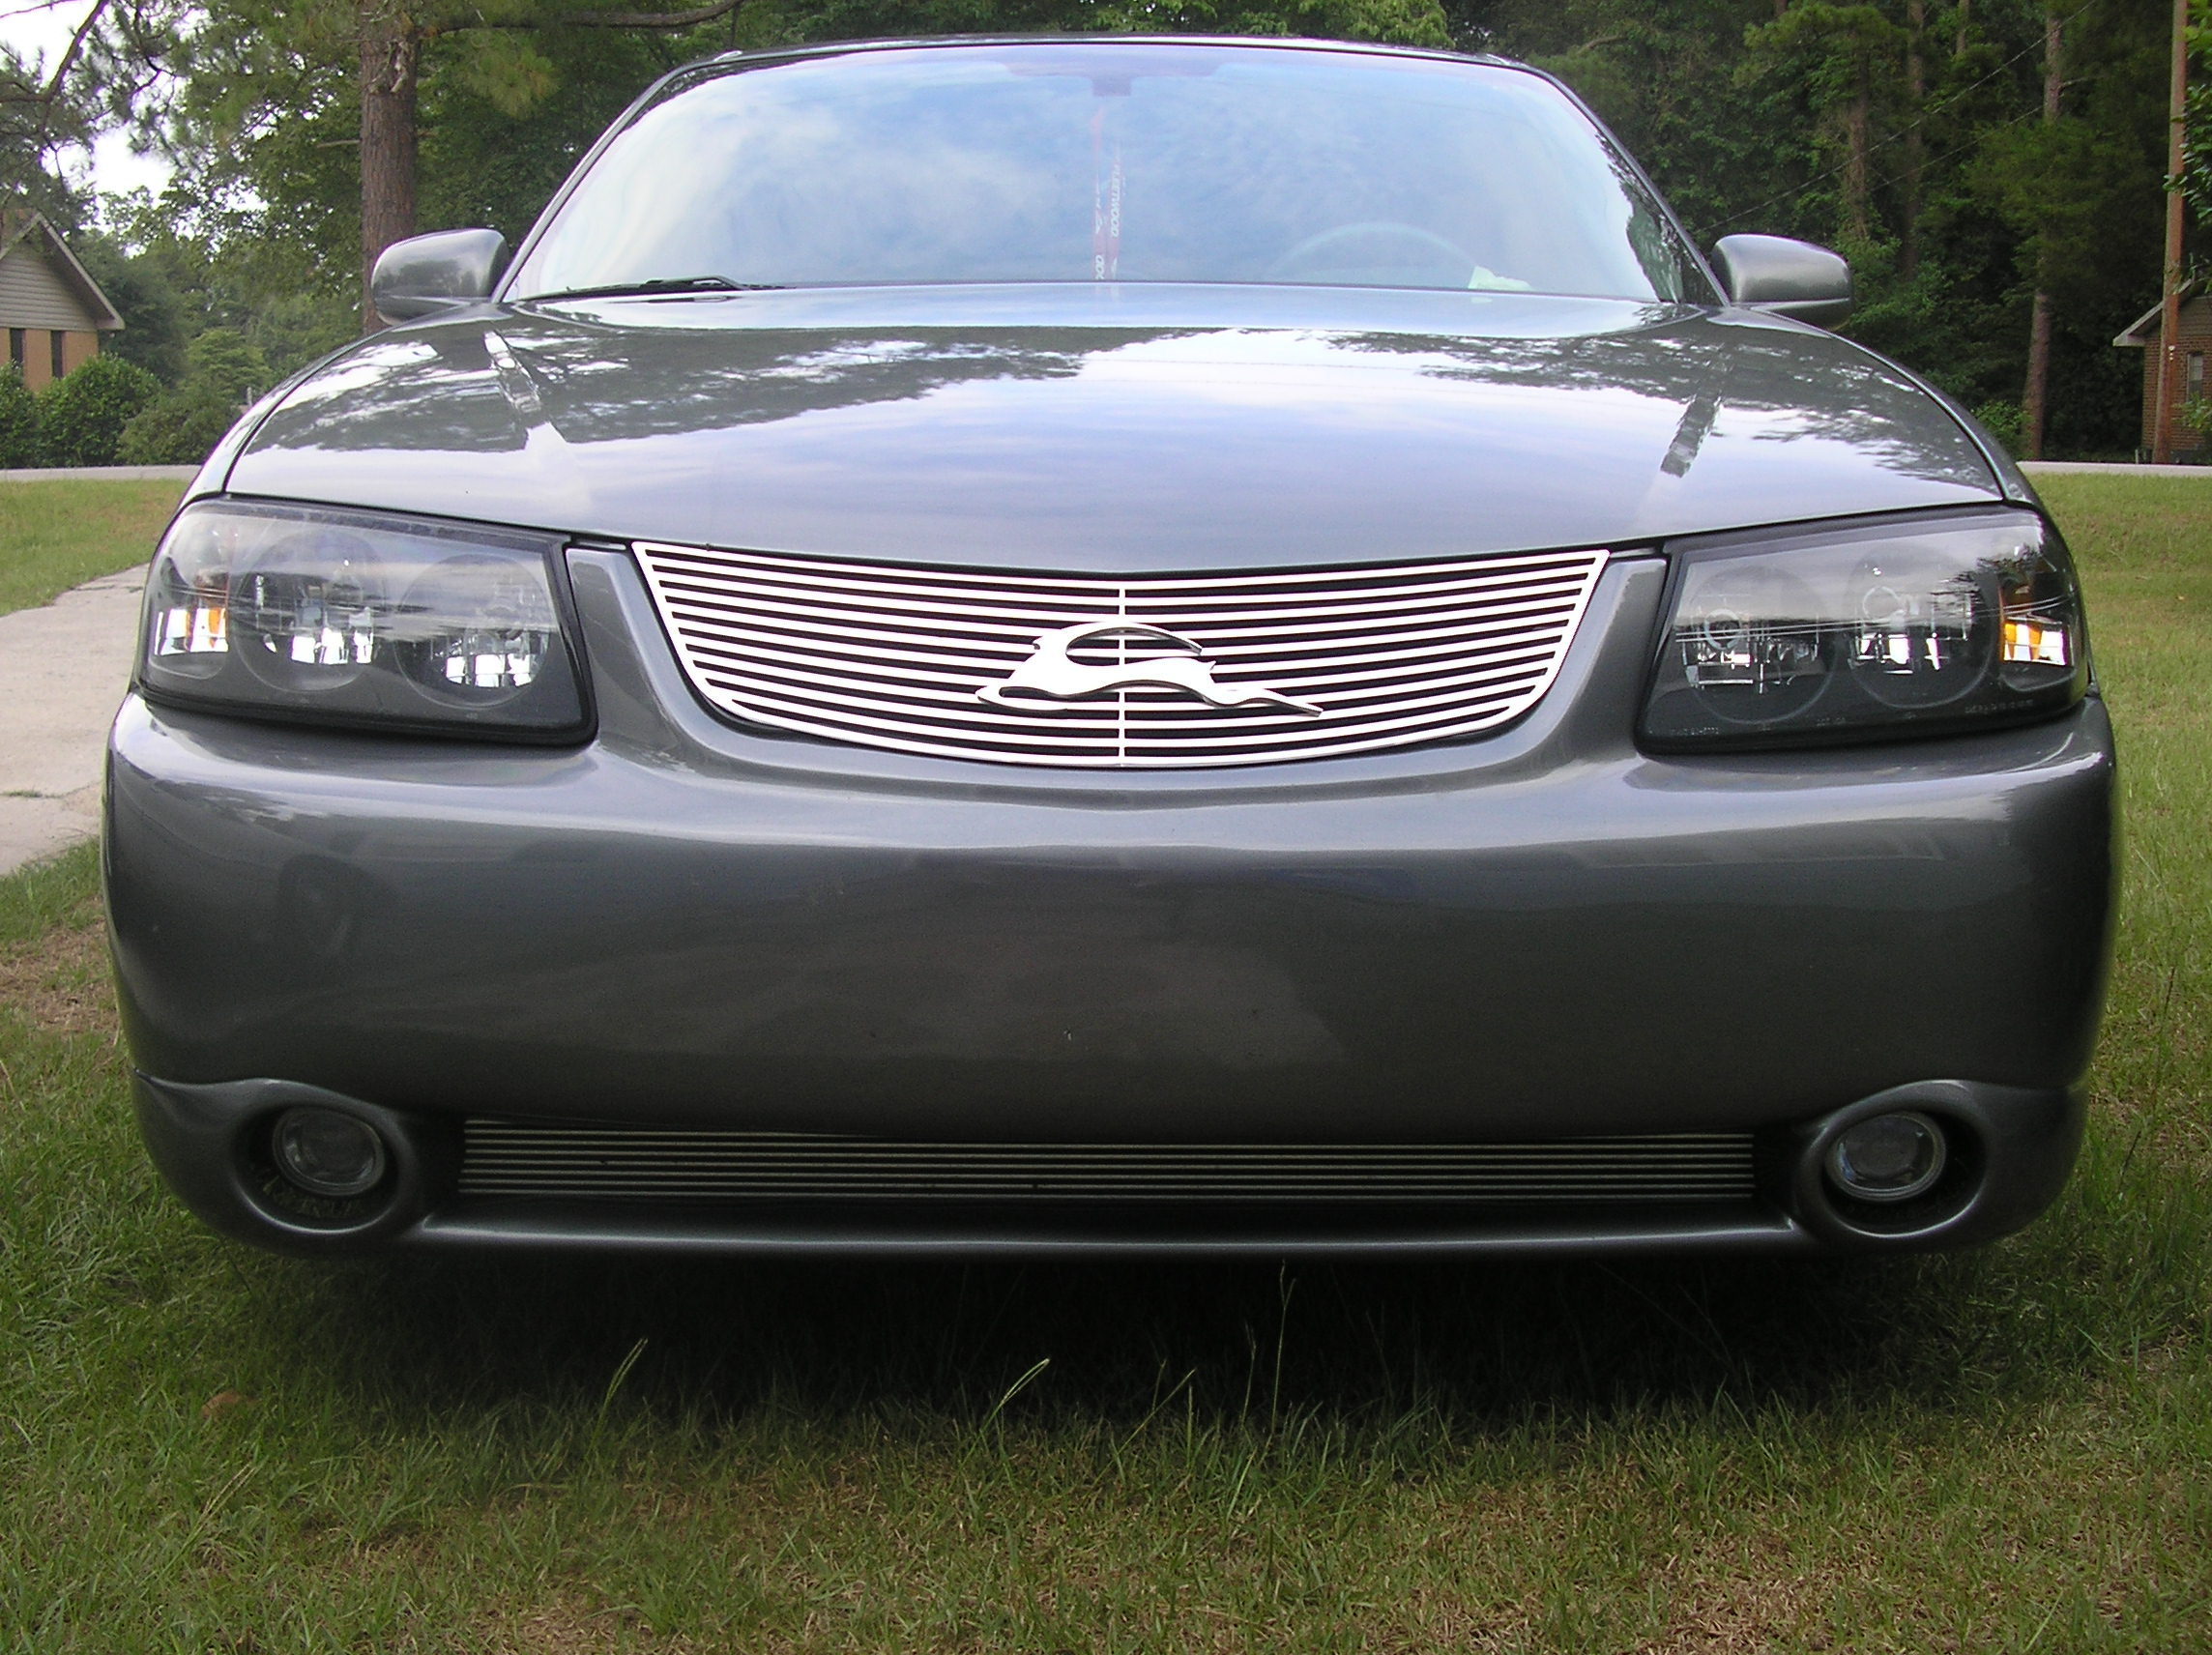 msw363 2005 Chevrolet Impala Specs Photos Modification Info at